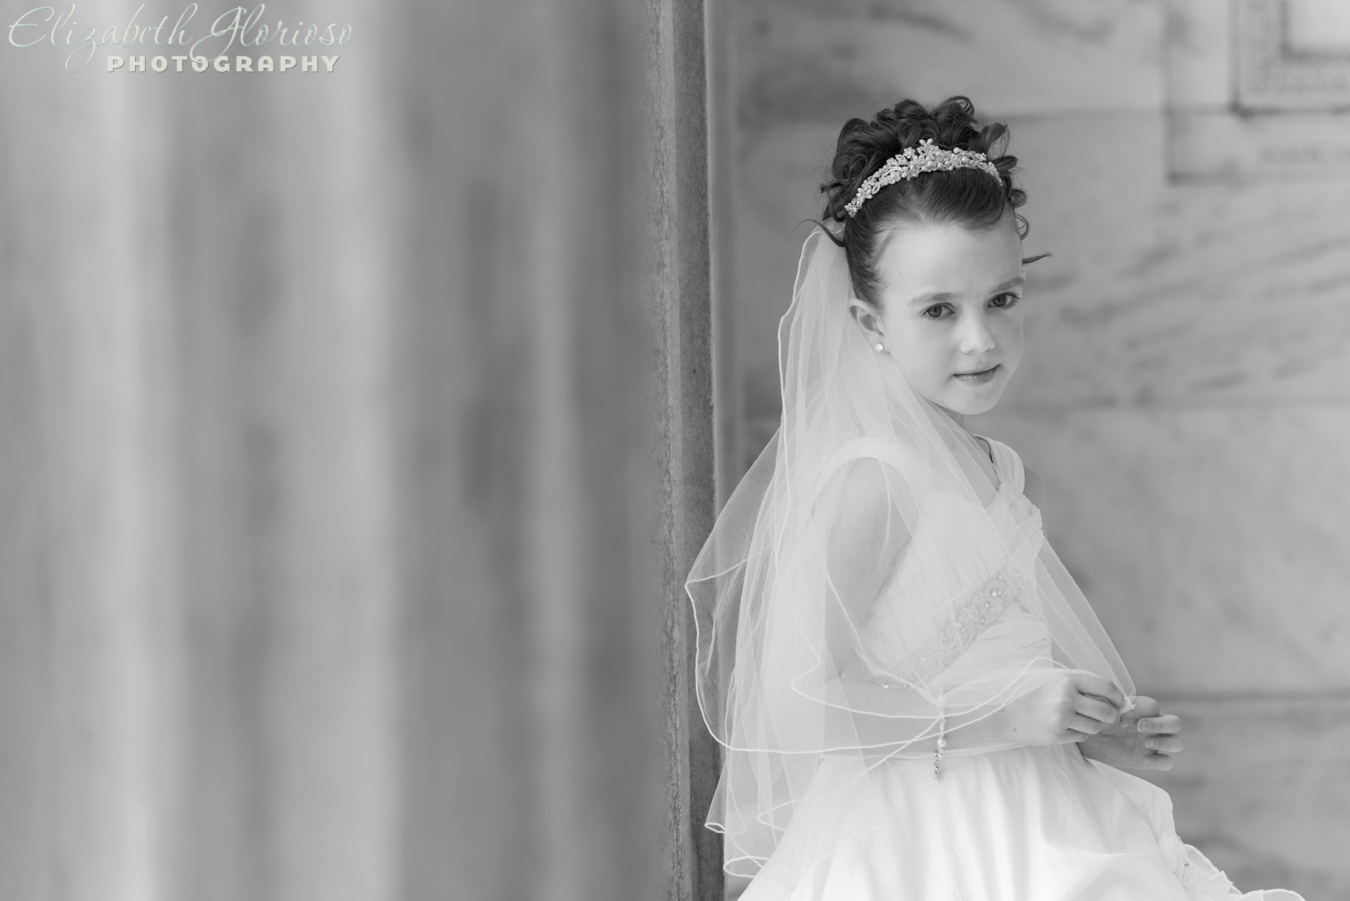 Cleveland_first_Communion_Glorioso_Photography-107